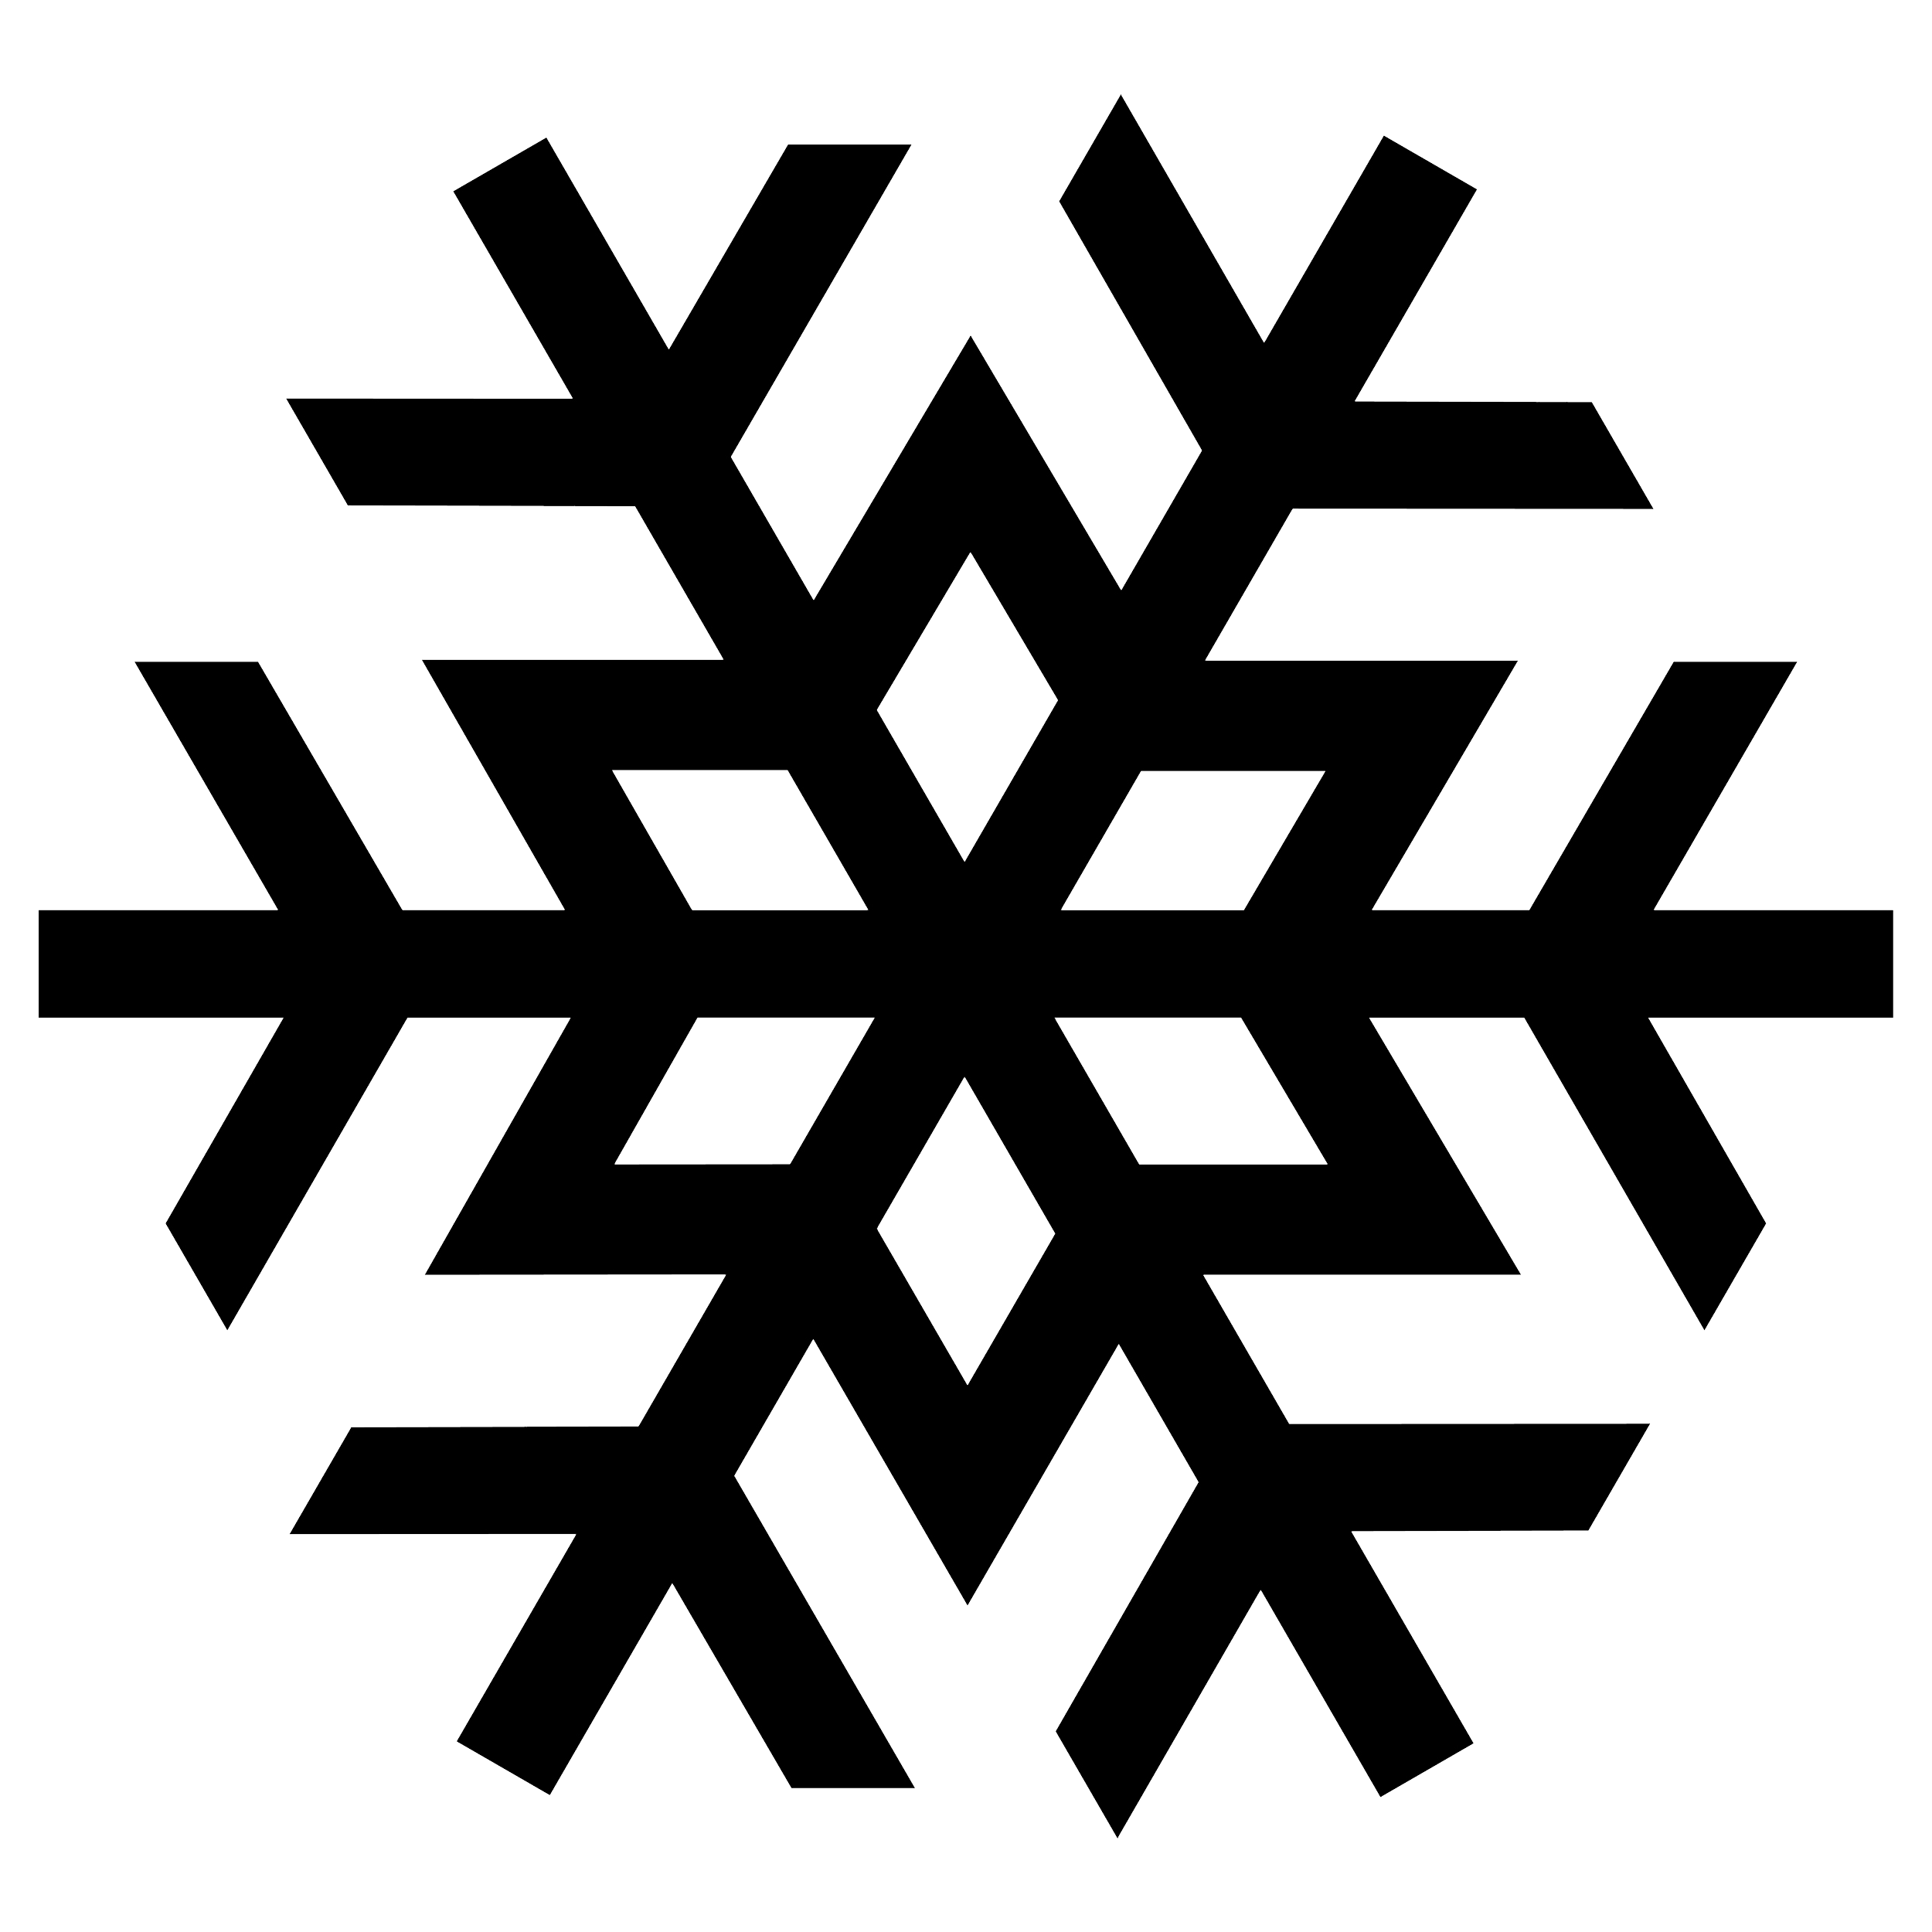 Snowflake silhouette png. Google search shapes line